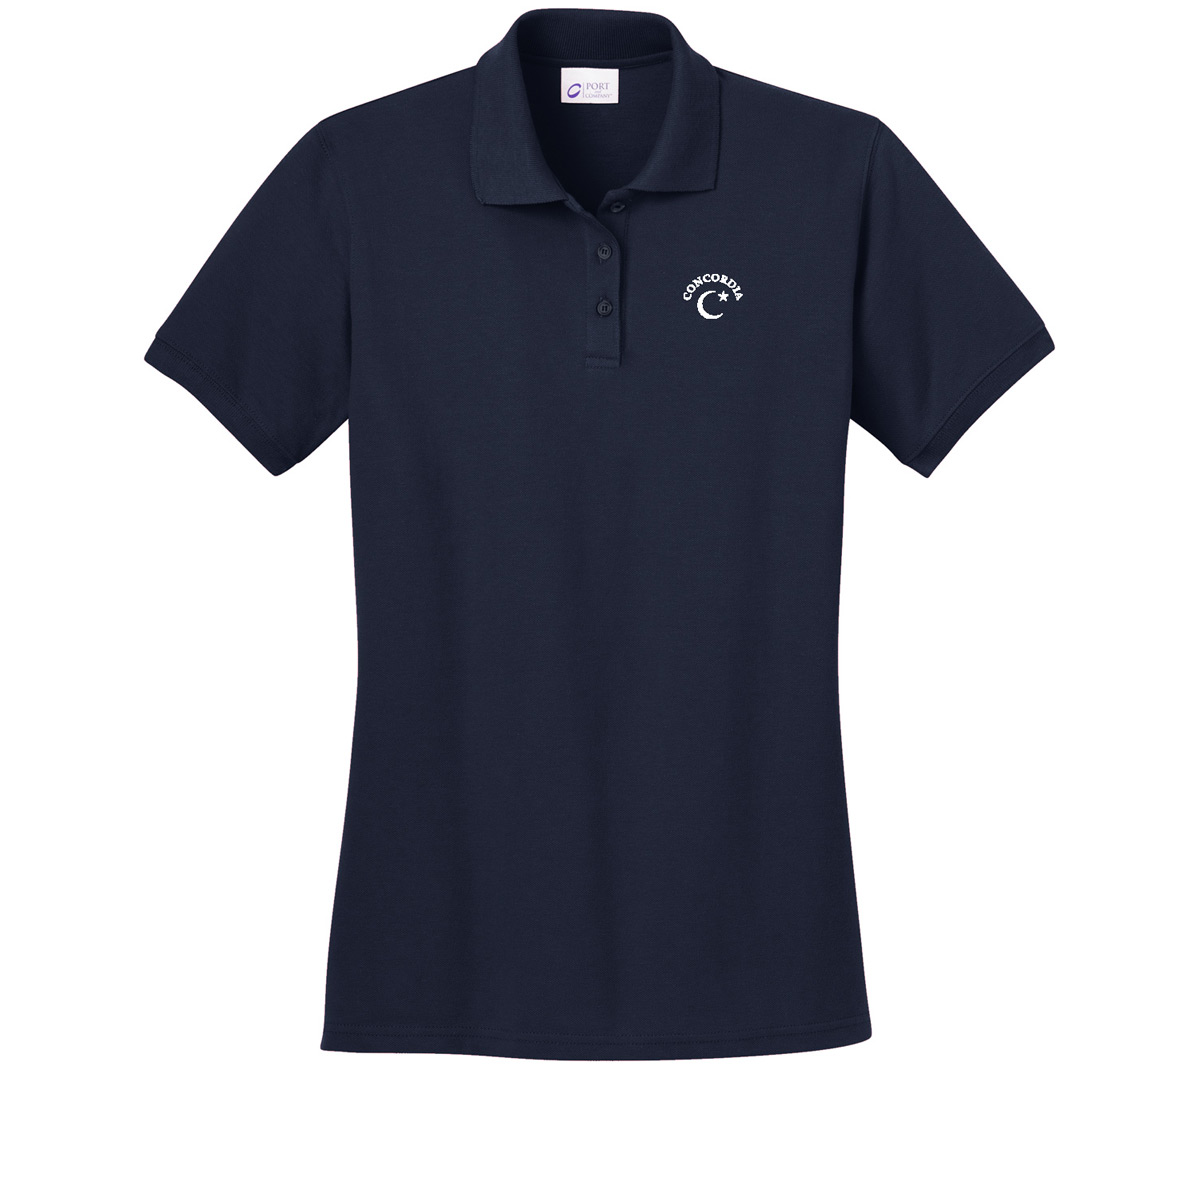 CONCORDIA - W'S COTTON POLO